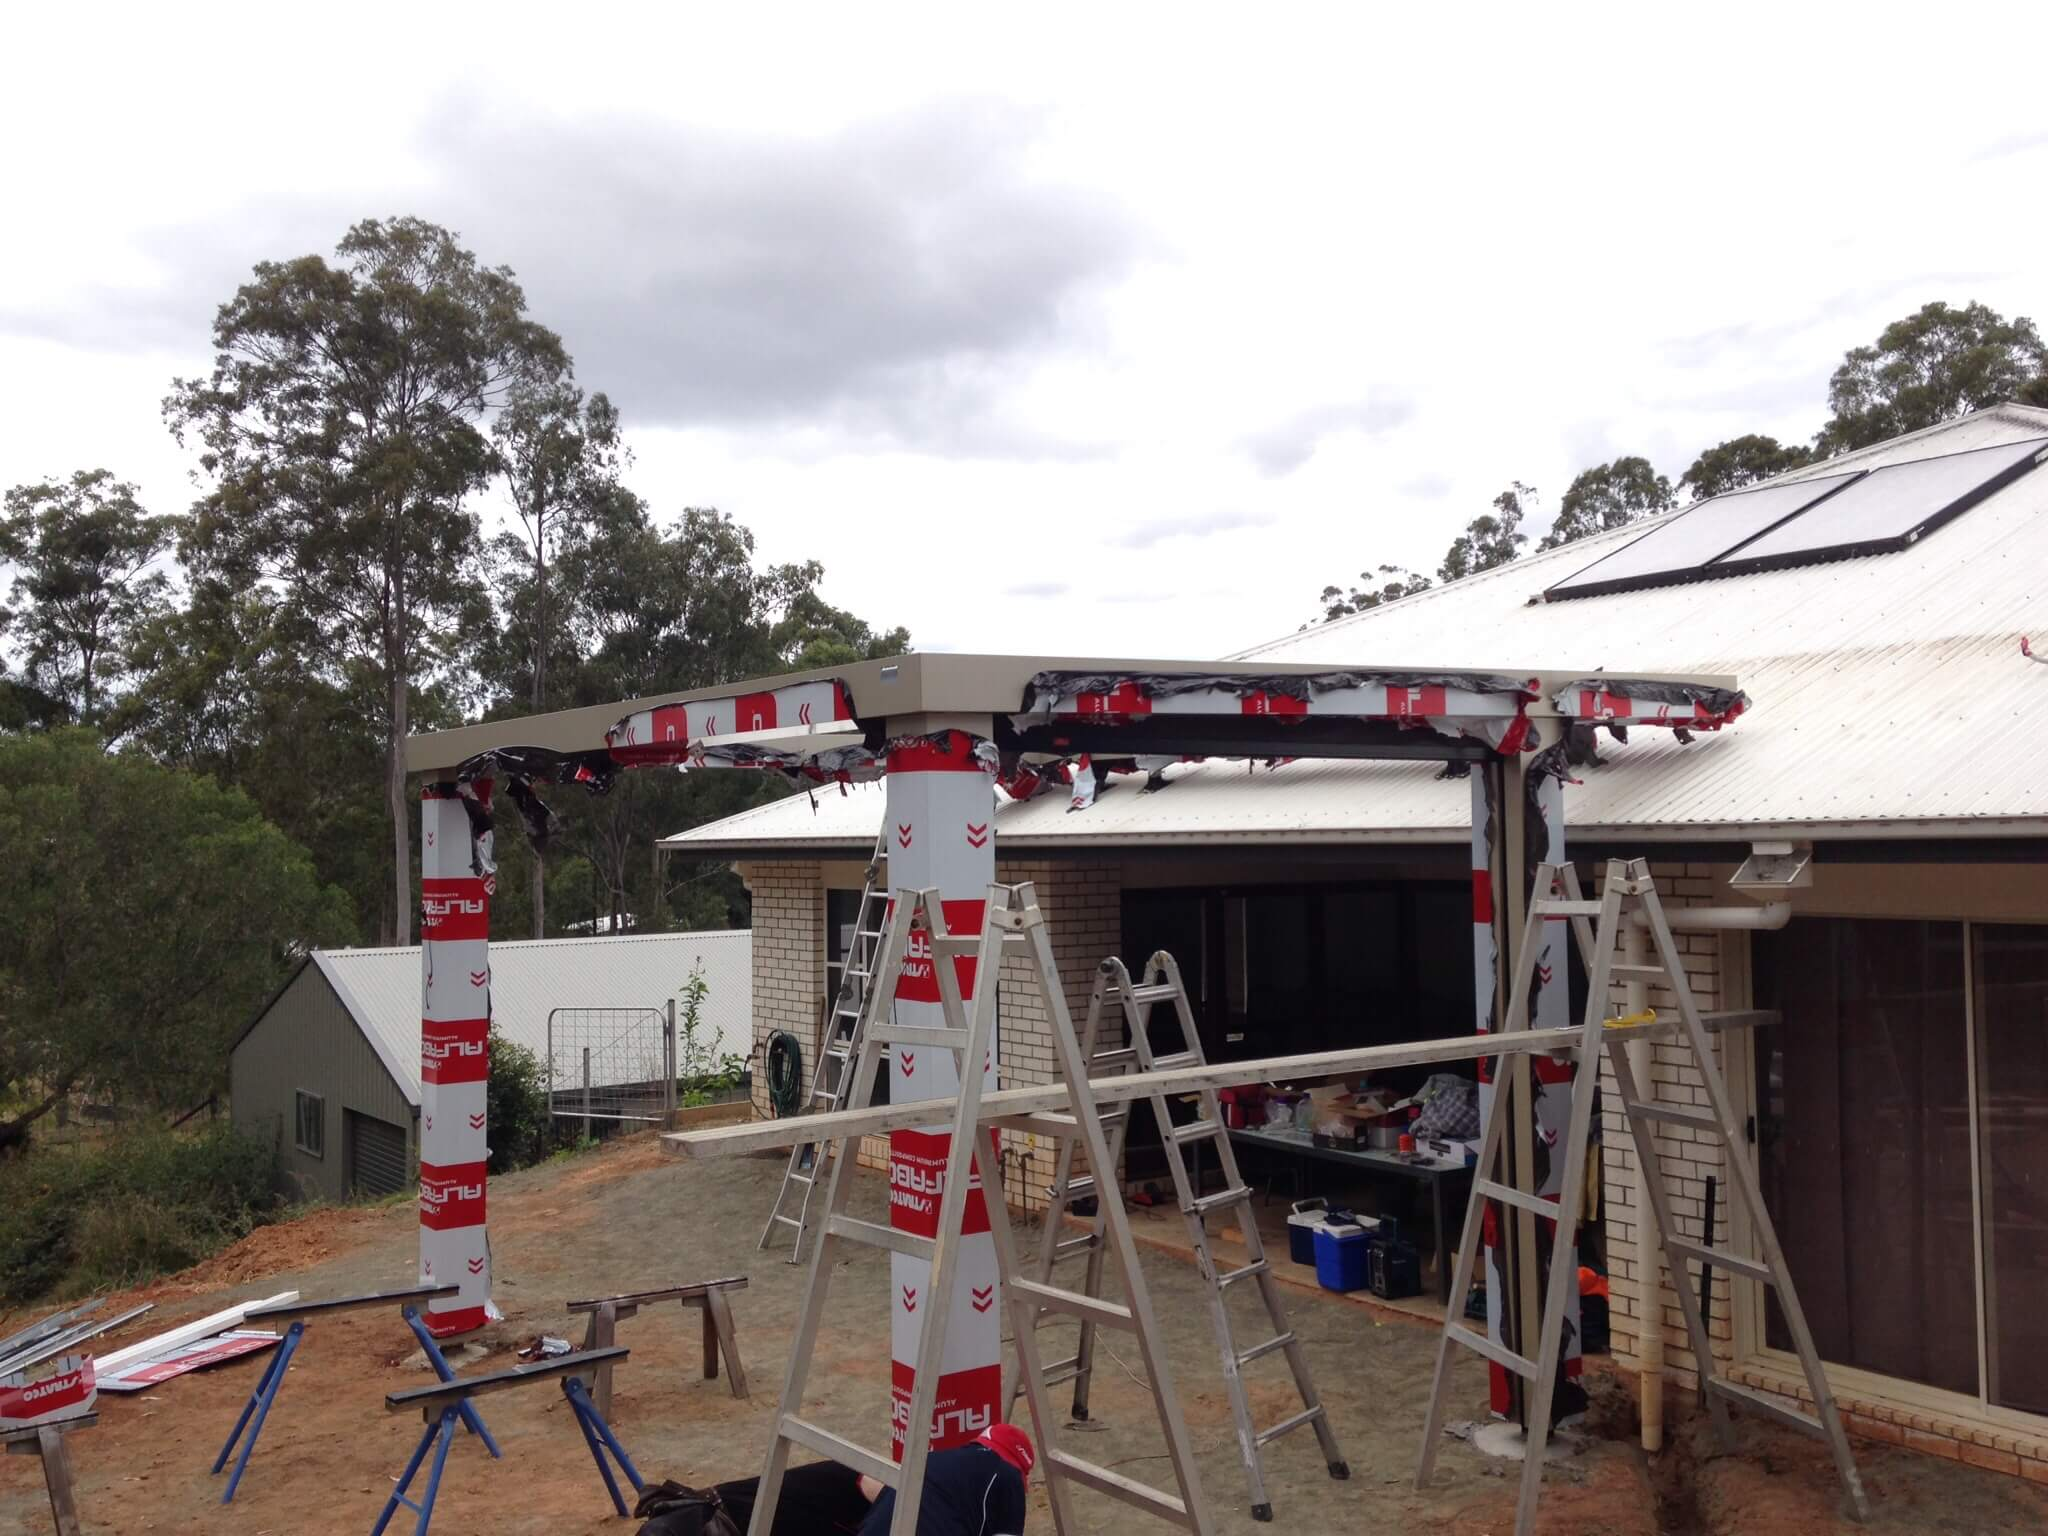 Adaptit carport builders Brisbane job in progress